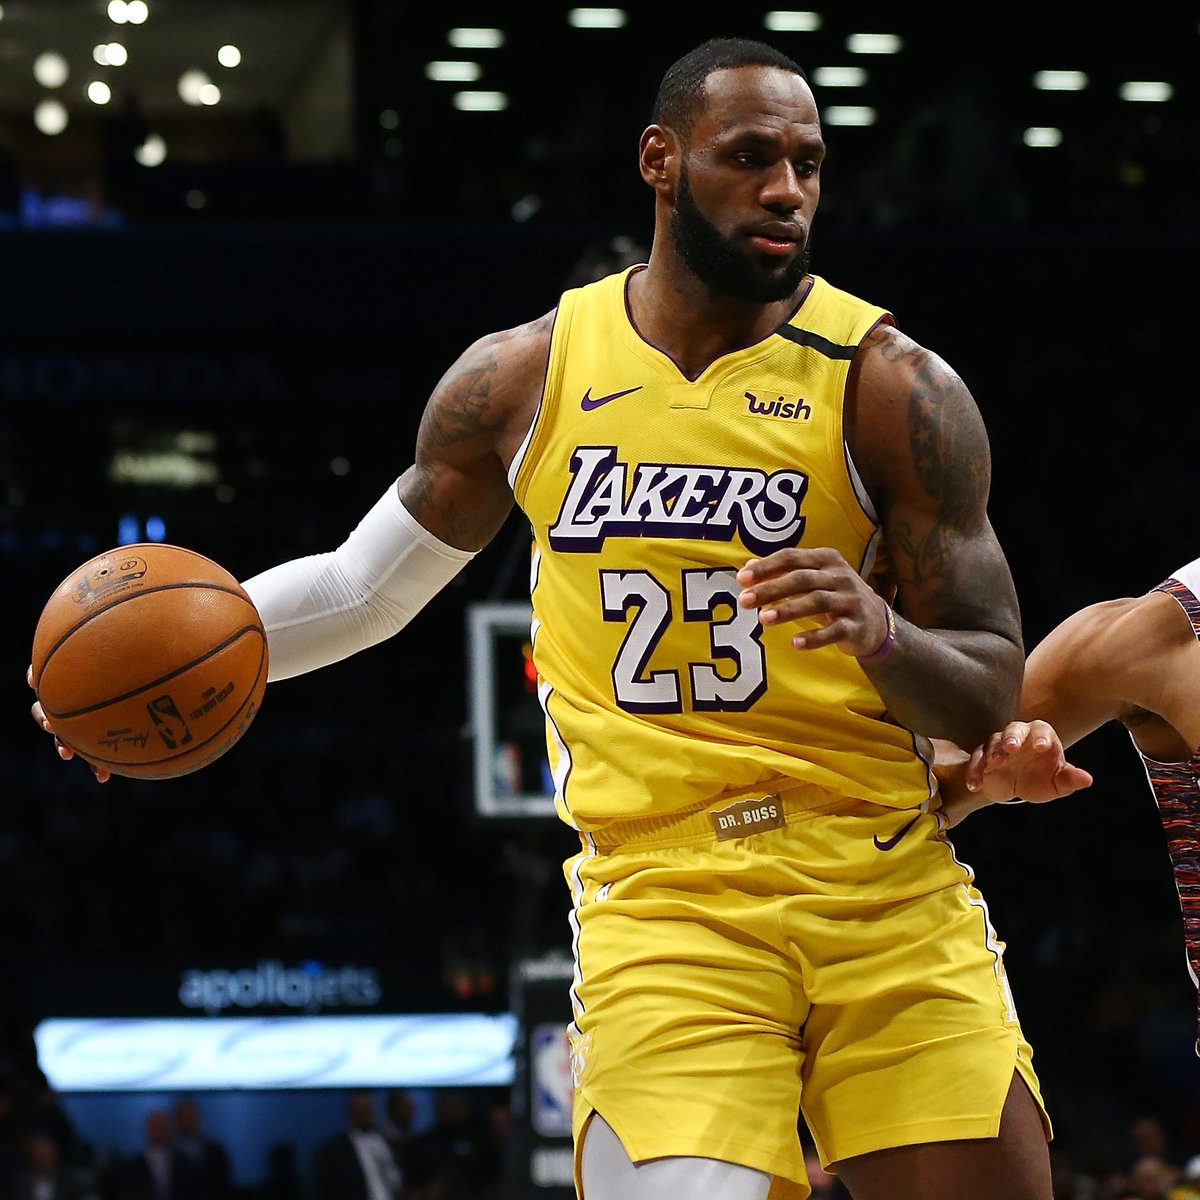 LeBron James (27 PTS, 12 REB, 10 AST) recorded his 3rd triple-double since turning 35 years old. The only player in @NBAHistory with more triple-doubles at age 35 or older is Jason Kidd (who had 8).